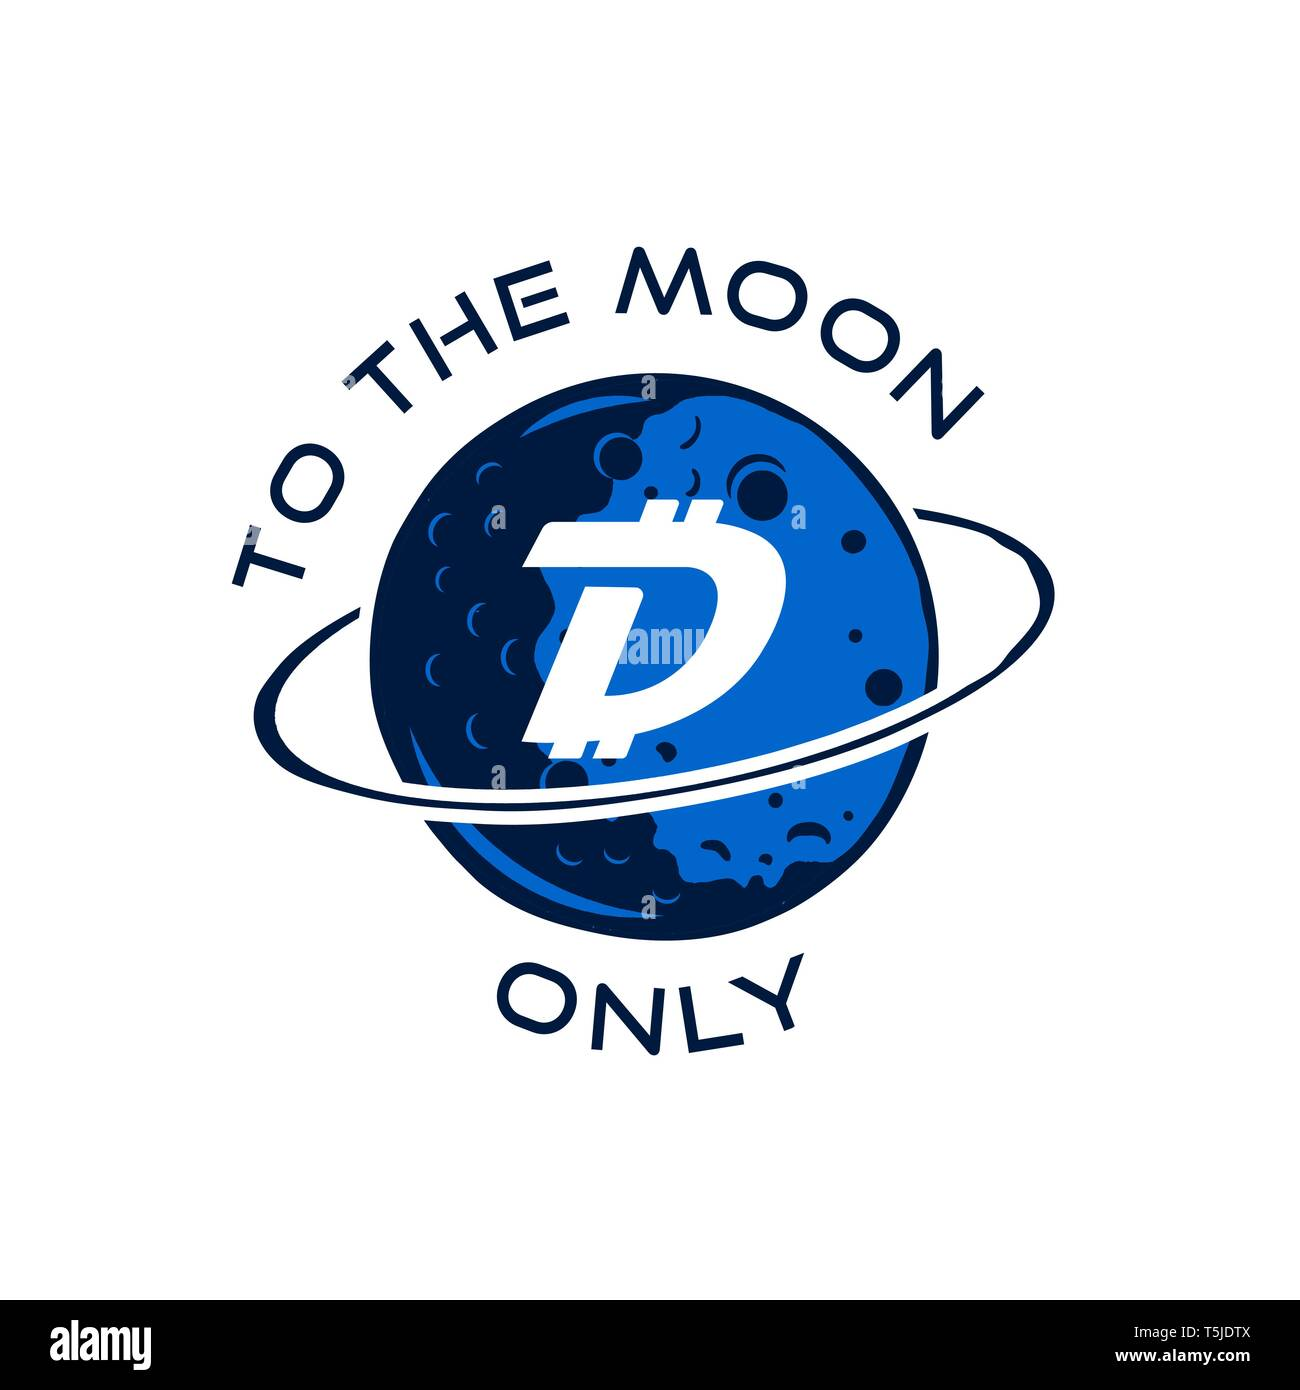 Digibyte badge concept  Digital asset DGB  To the moom only